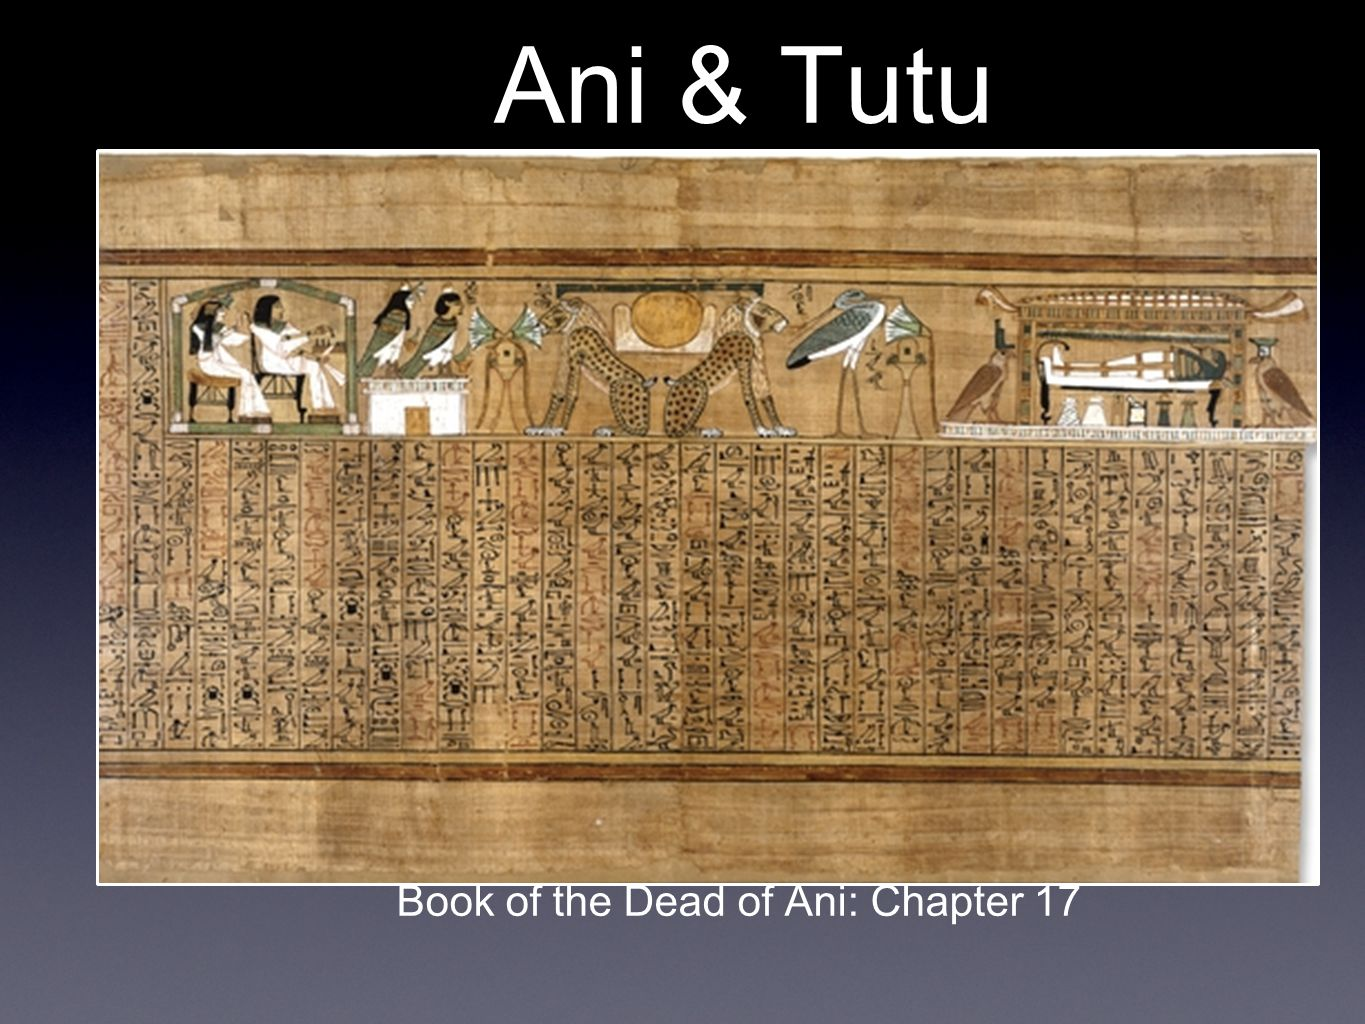 Ani & Tutu Book of the Dead of Ani: Chapter 17